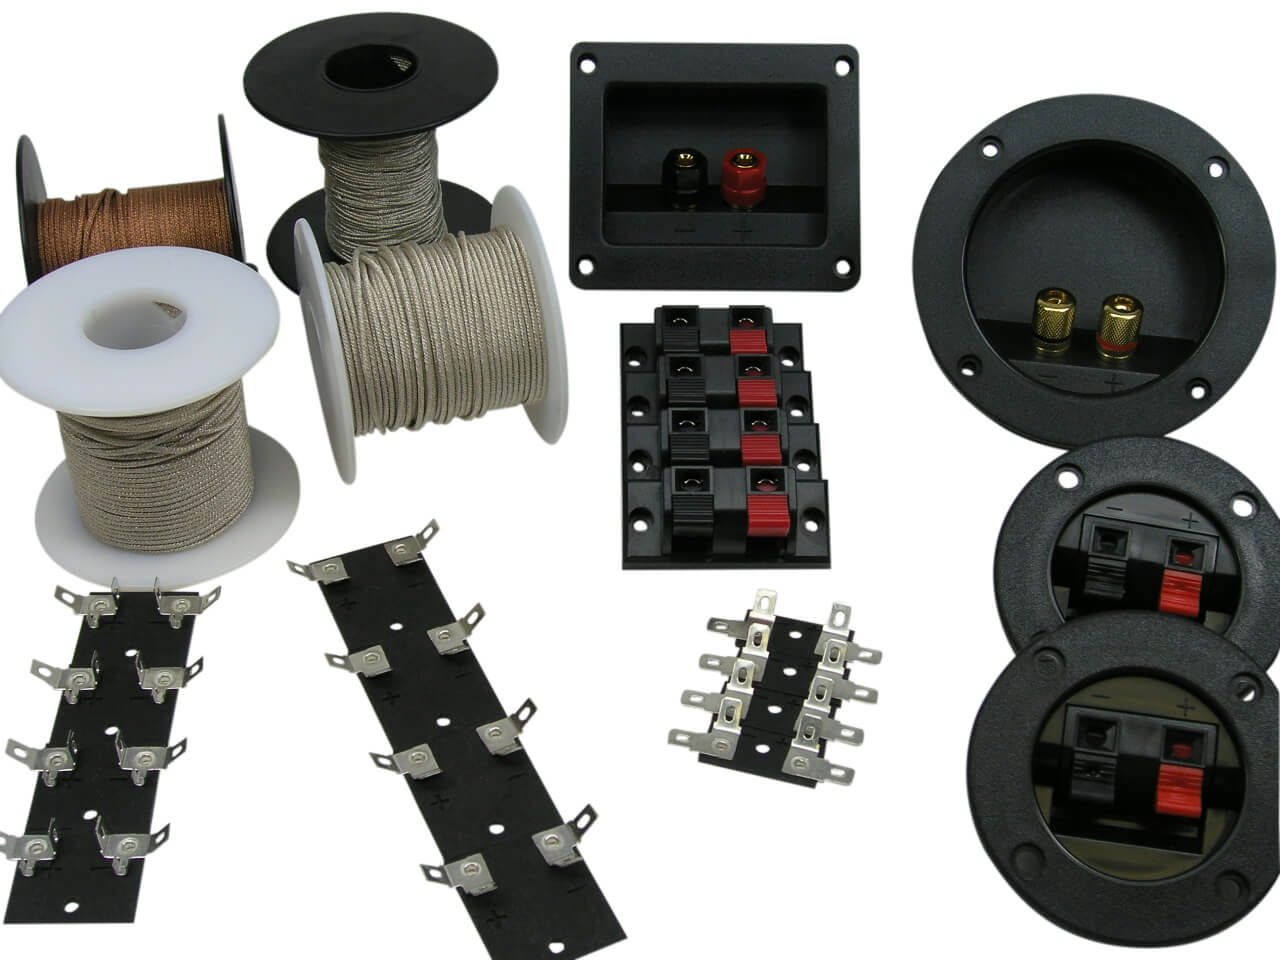 Speaker Parts, Foam Edge Speaker Repair Kits, Speaker Recone Kits